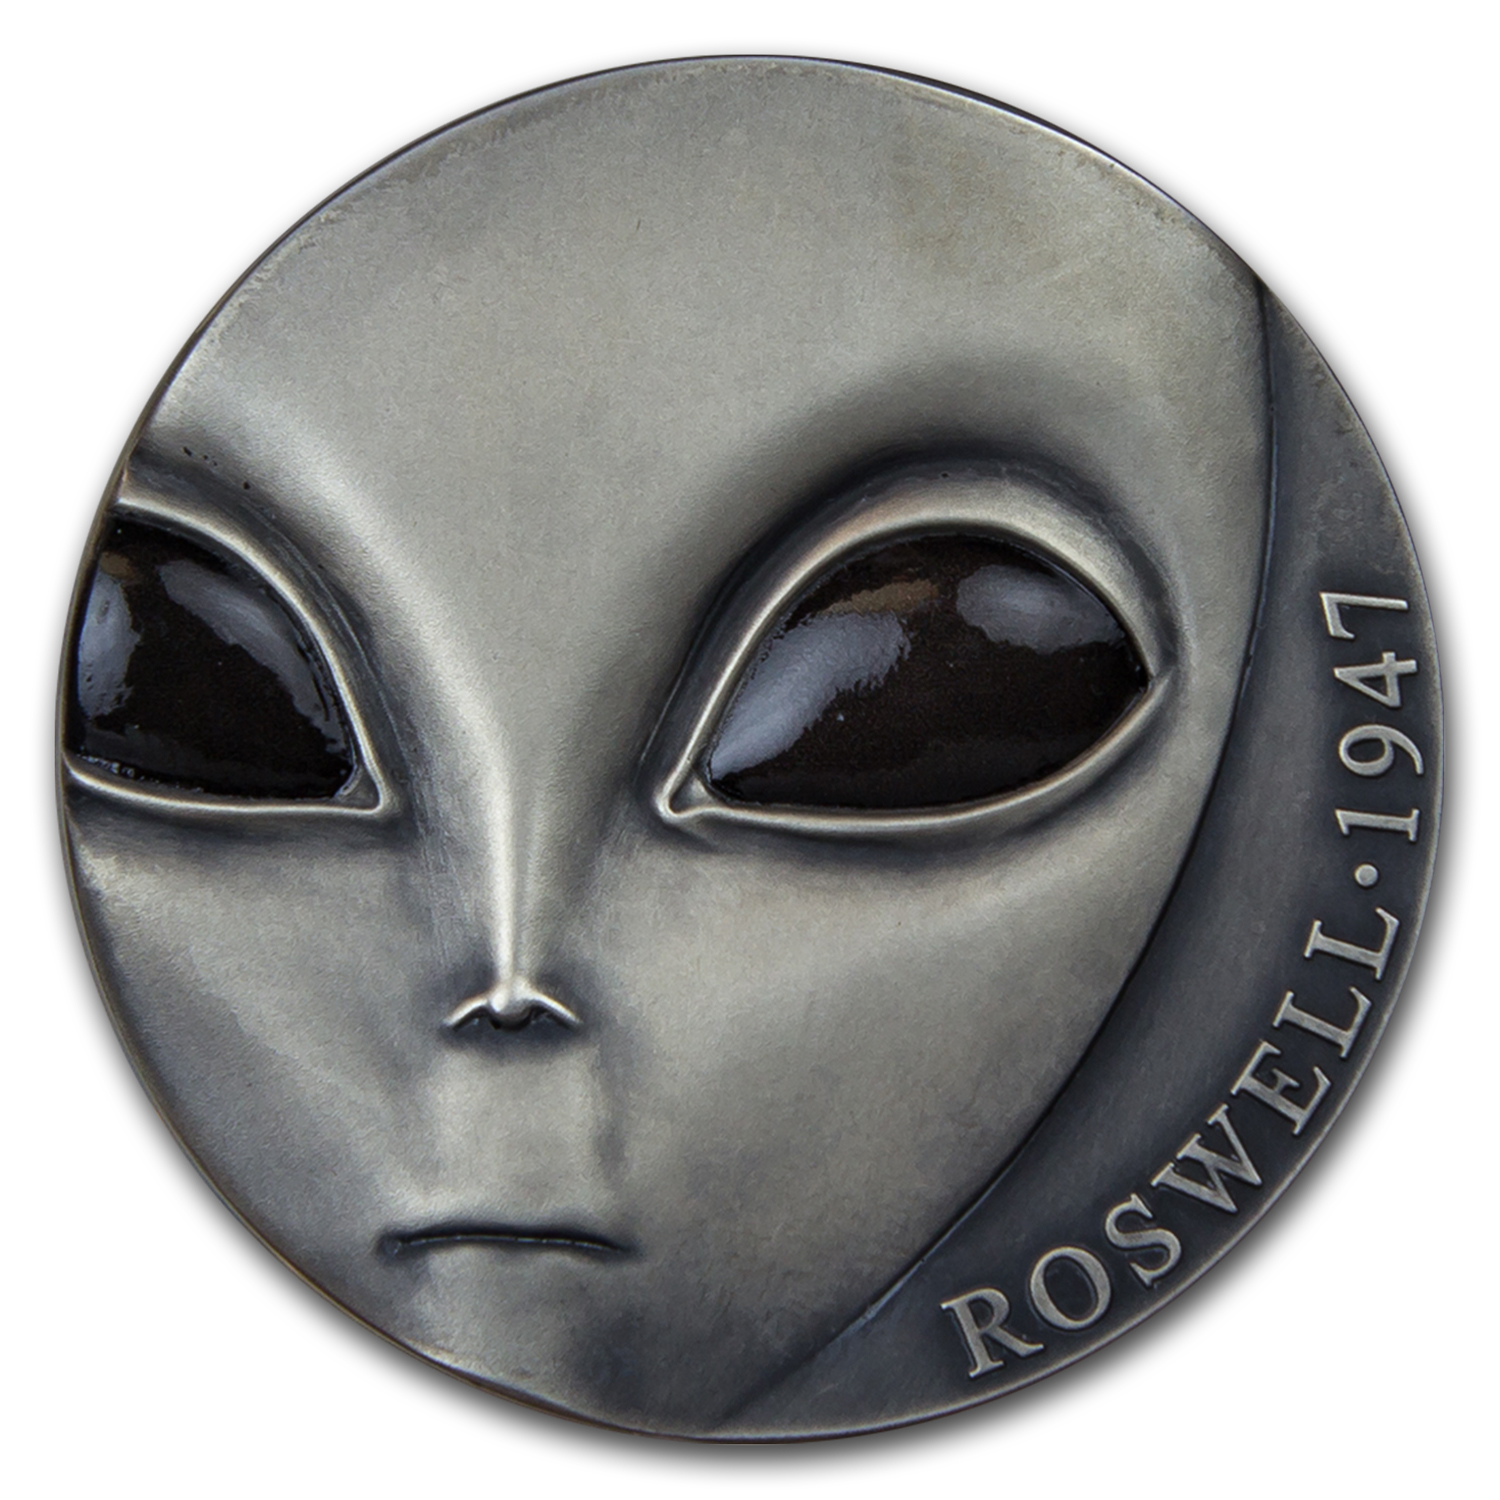 2017 Cameroon Silver UFO Series - 70th Anniv. of Roswell Incident